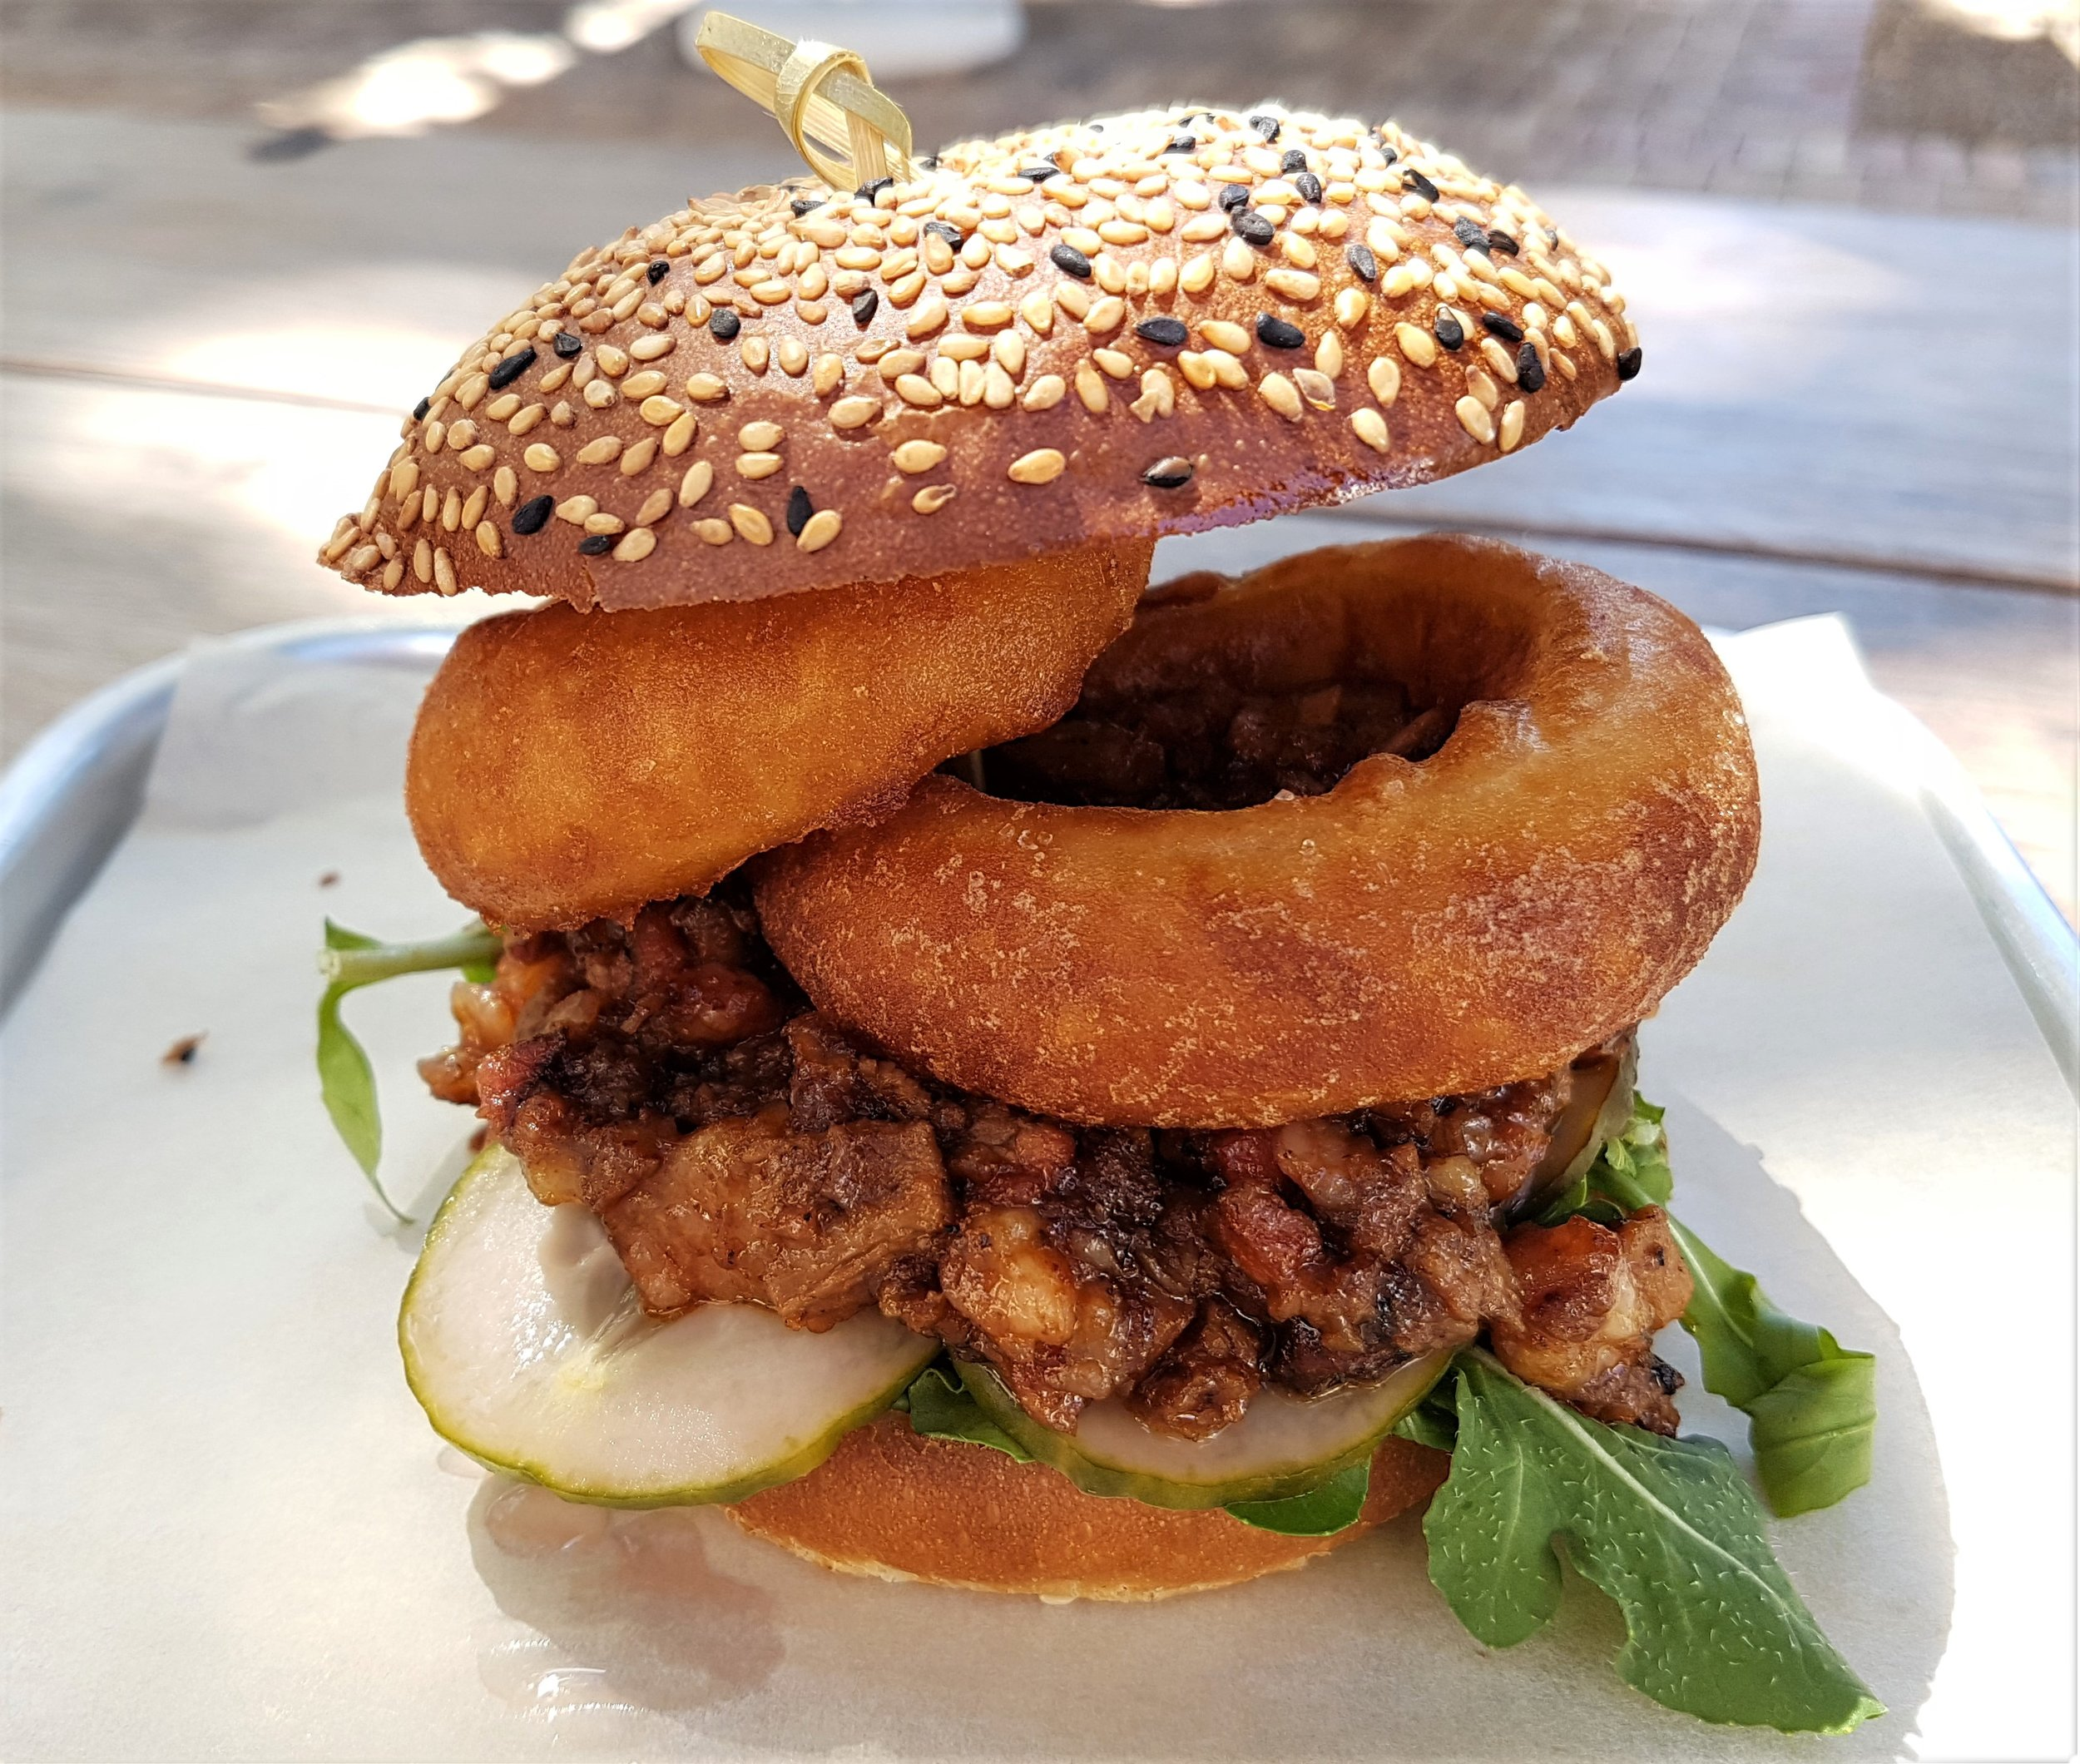 beef brisket with onion rings, watercress, butter pickles